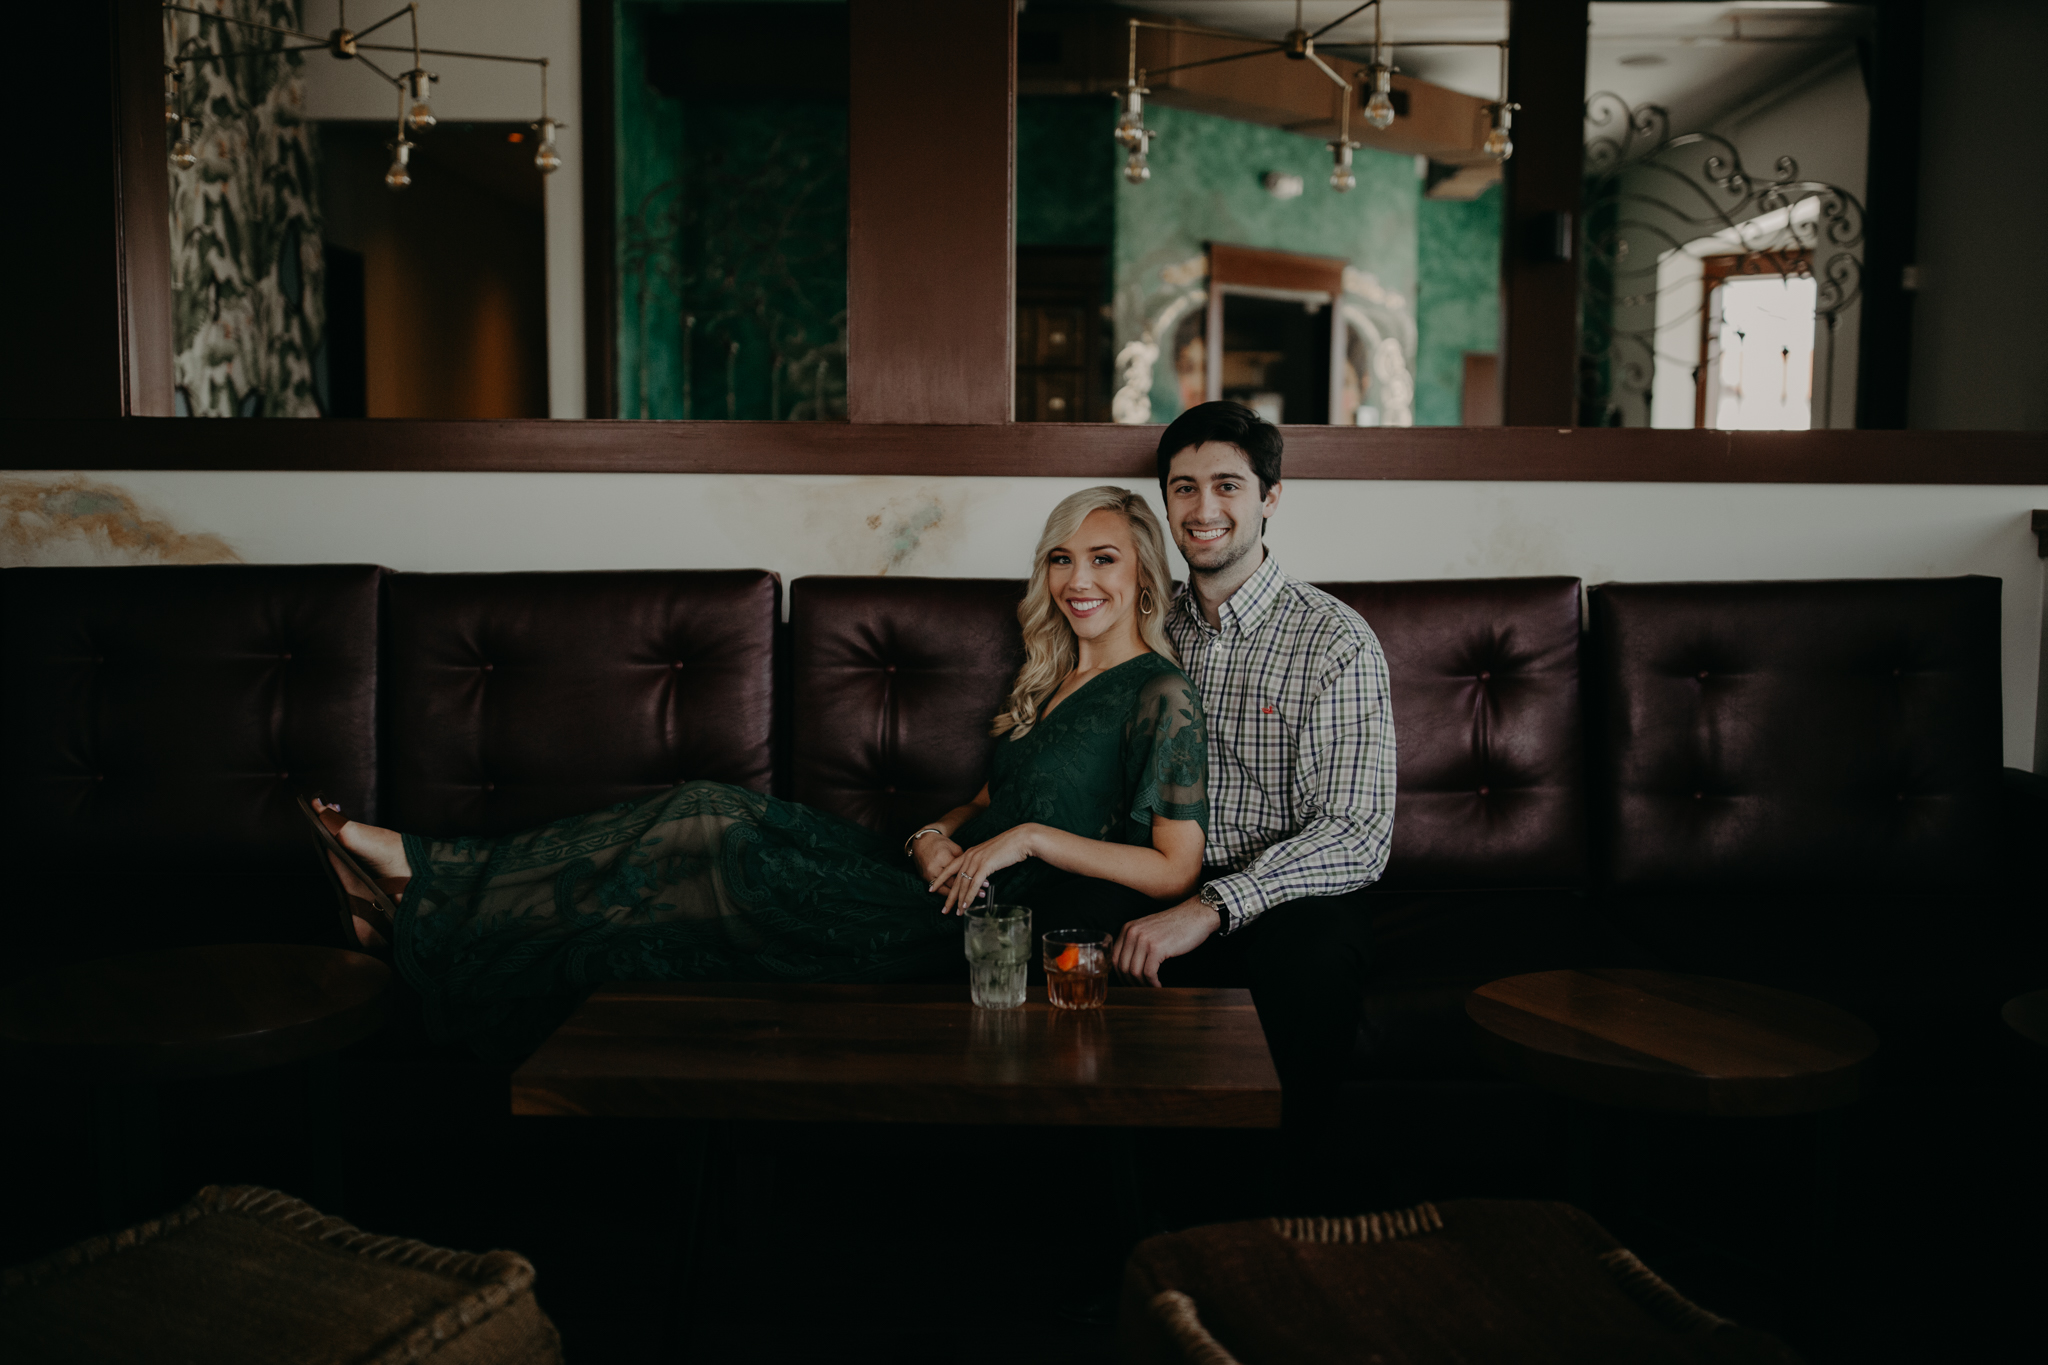 Ali-and-Jake-Chattanooga-Nashville-Tennessee-Wedding-Elopement-Photographer-91.jpg